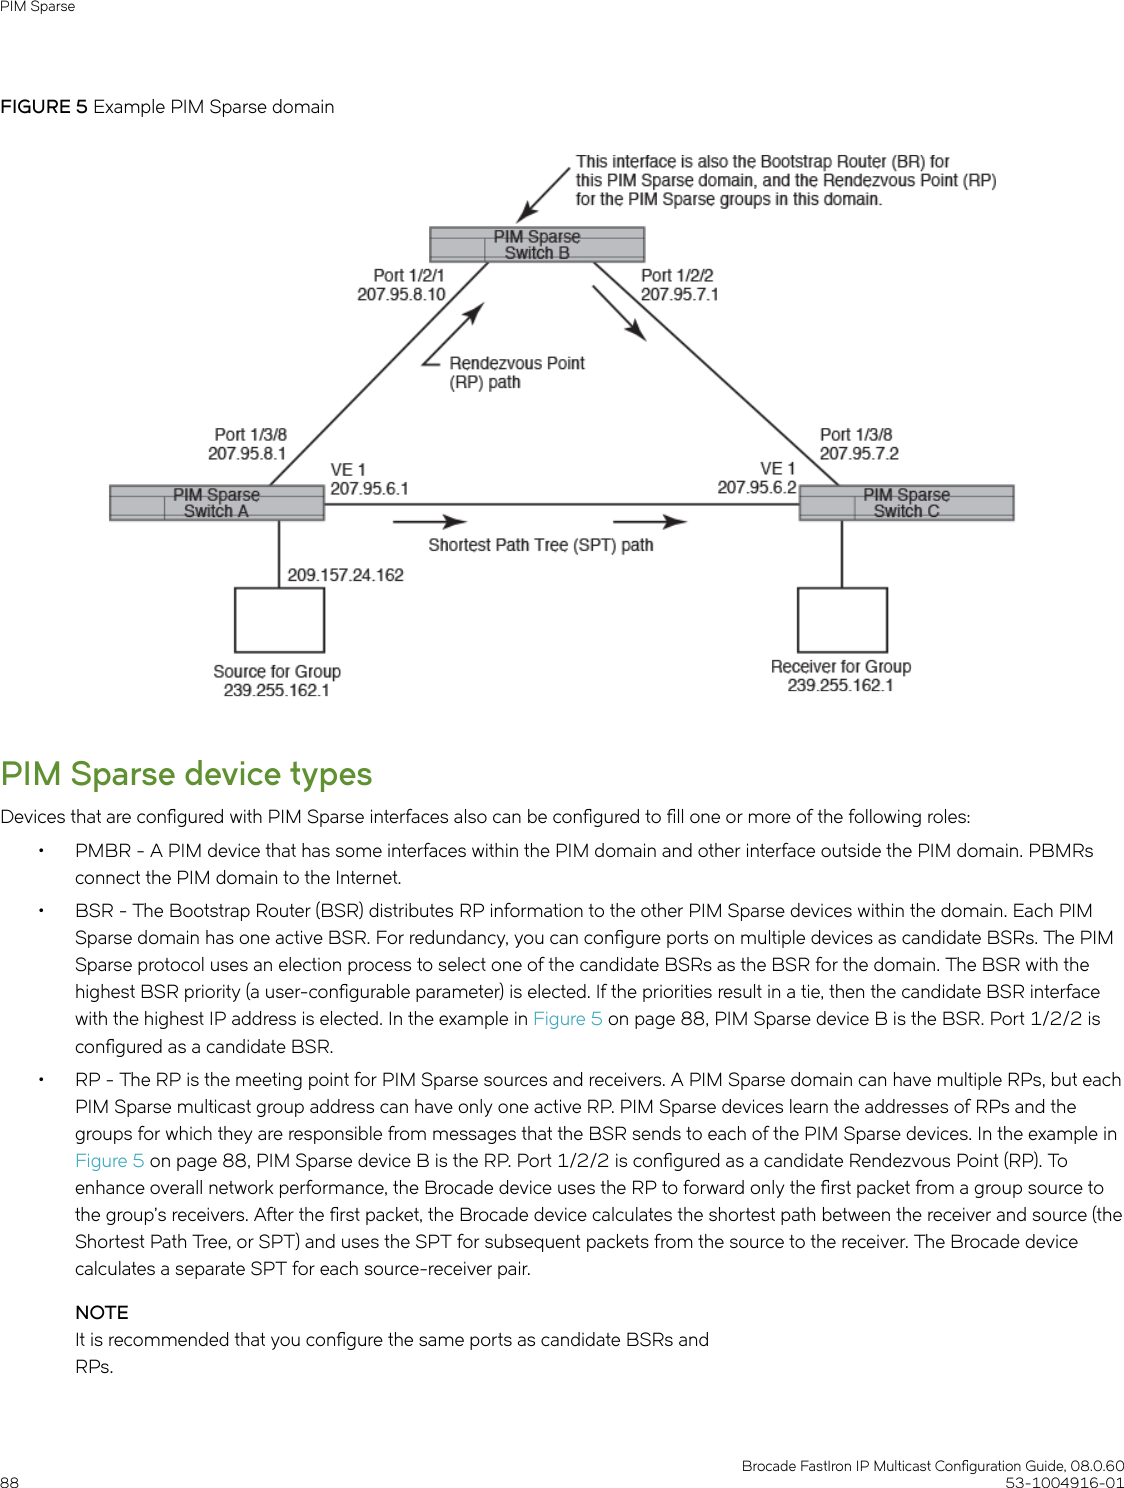 Ruckus Brocade FastIron IP Multicast Configuration Guide, 08 0 60